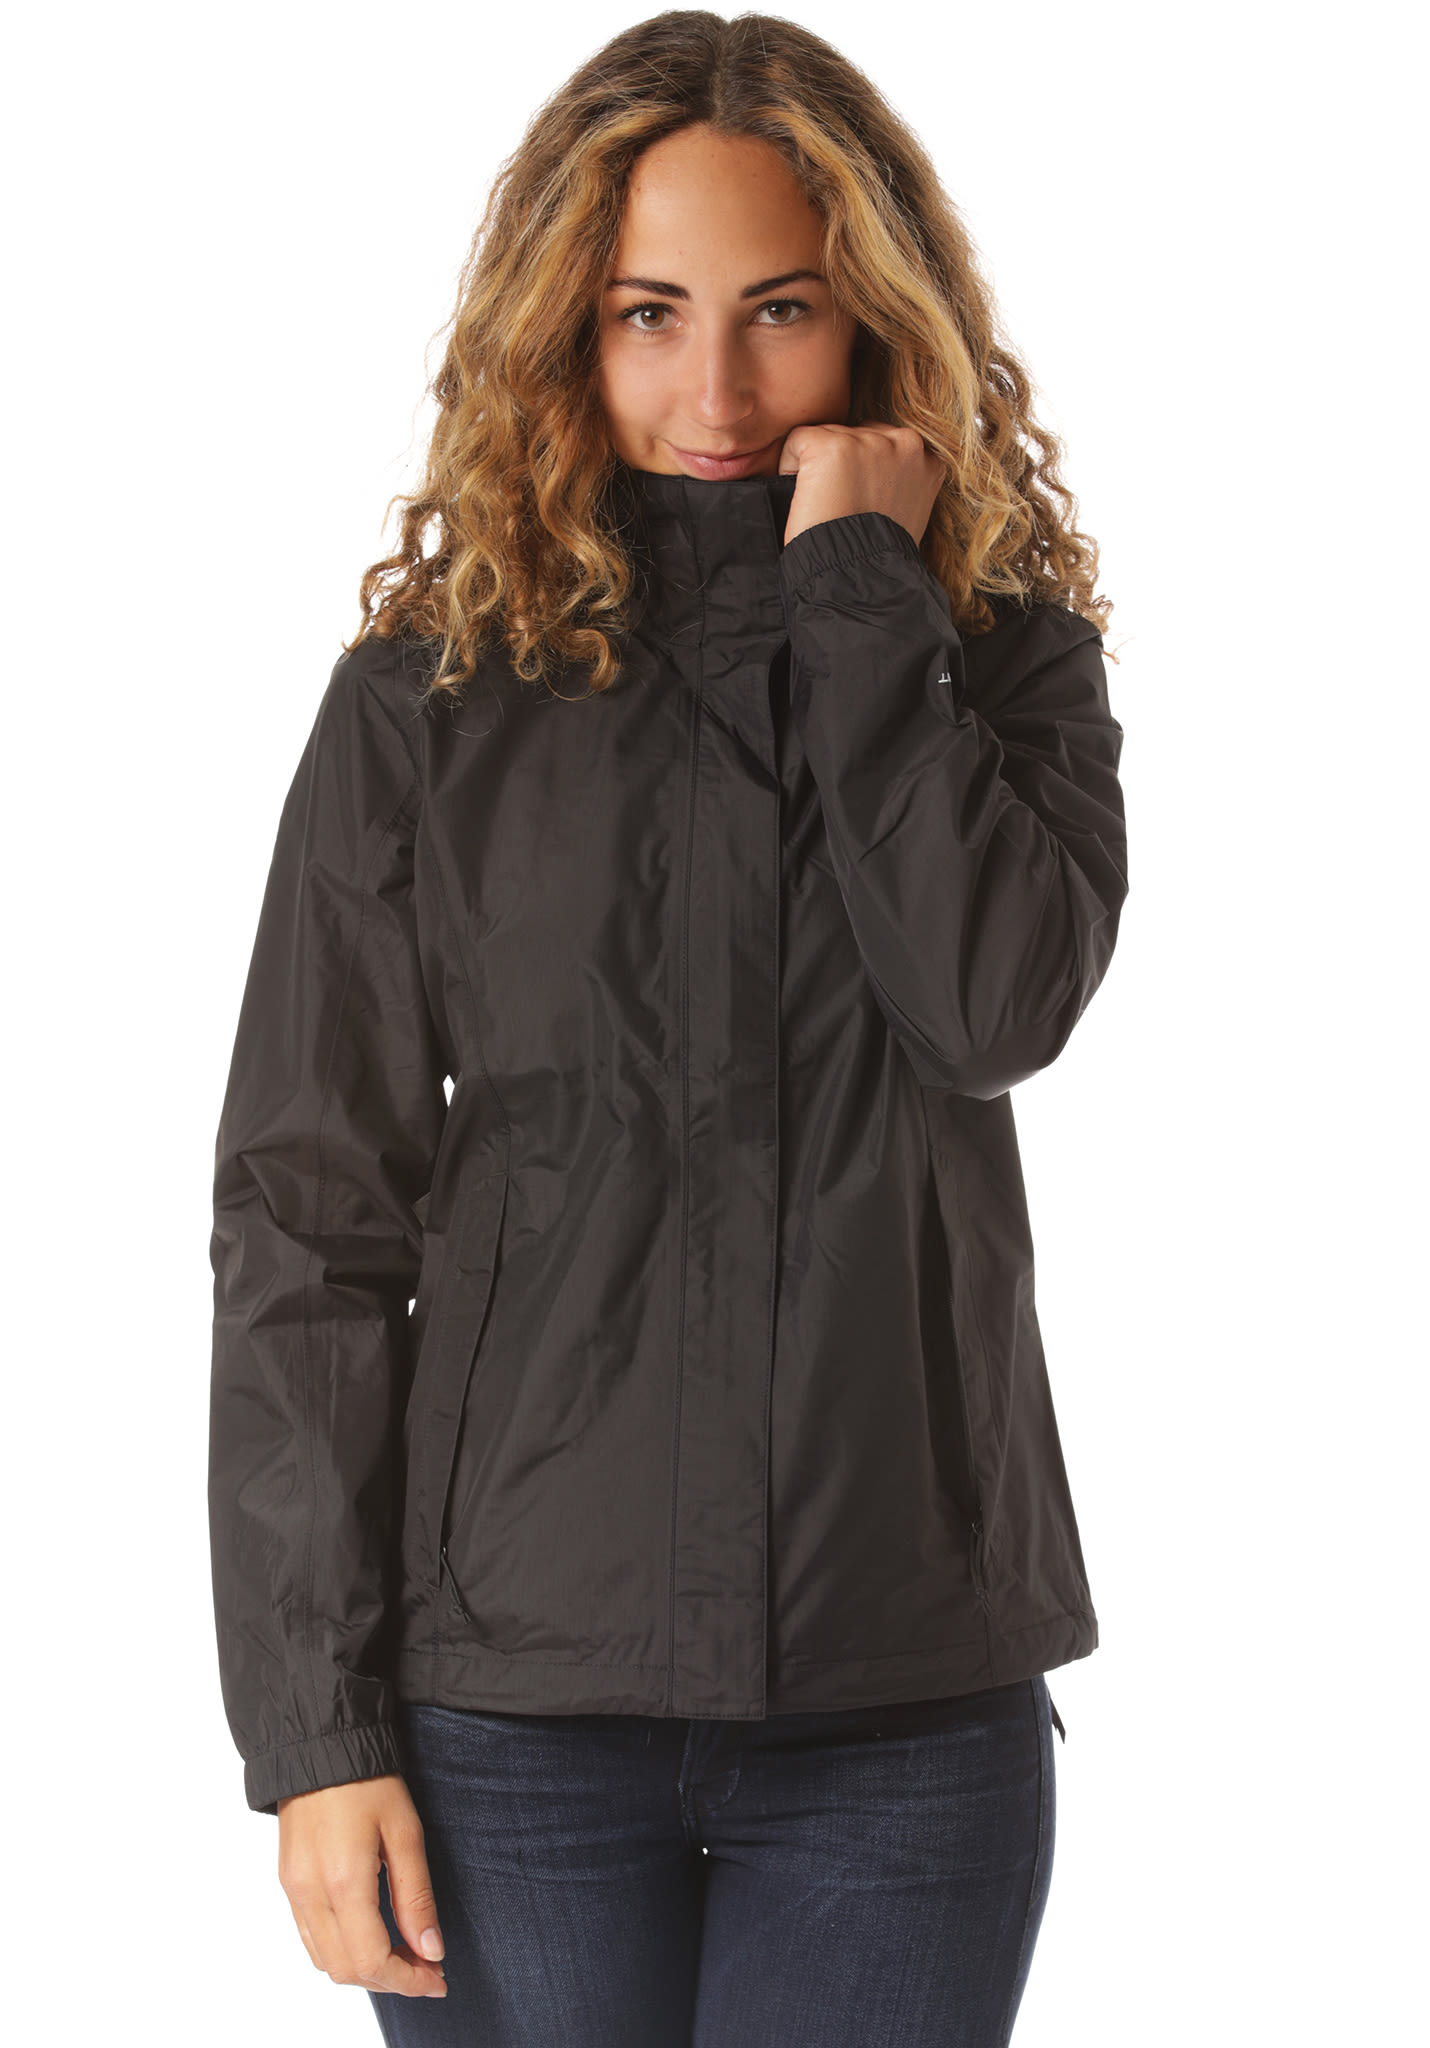 THE NORTH FACE Resolve 2 - Functional Jacket for Women - Black - Planet  Sports cea9993ce